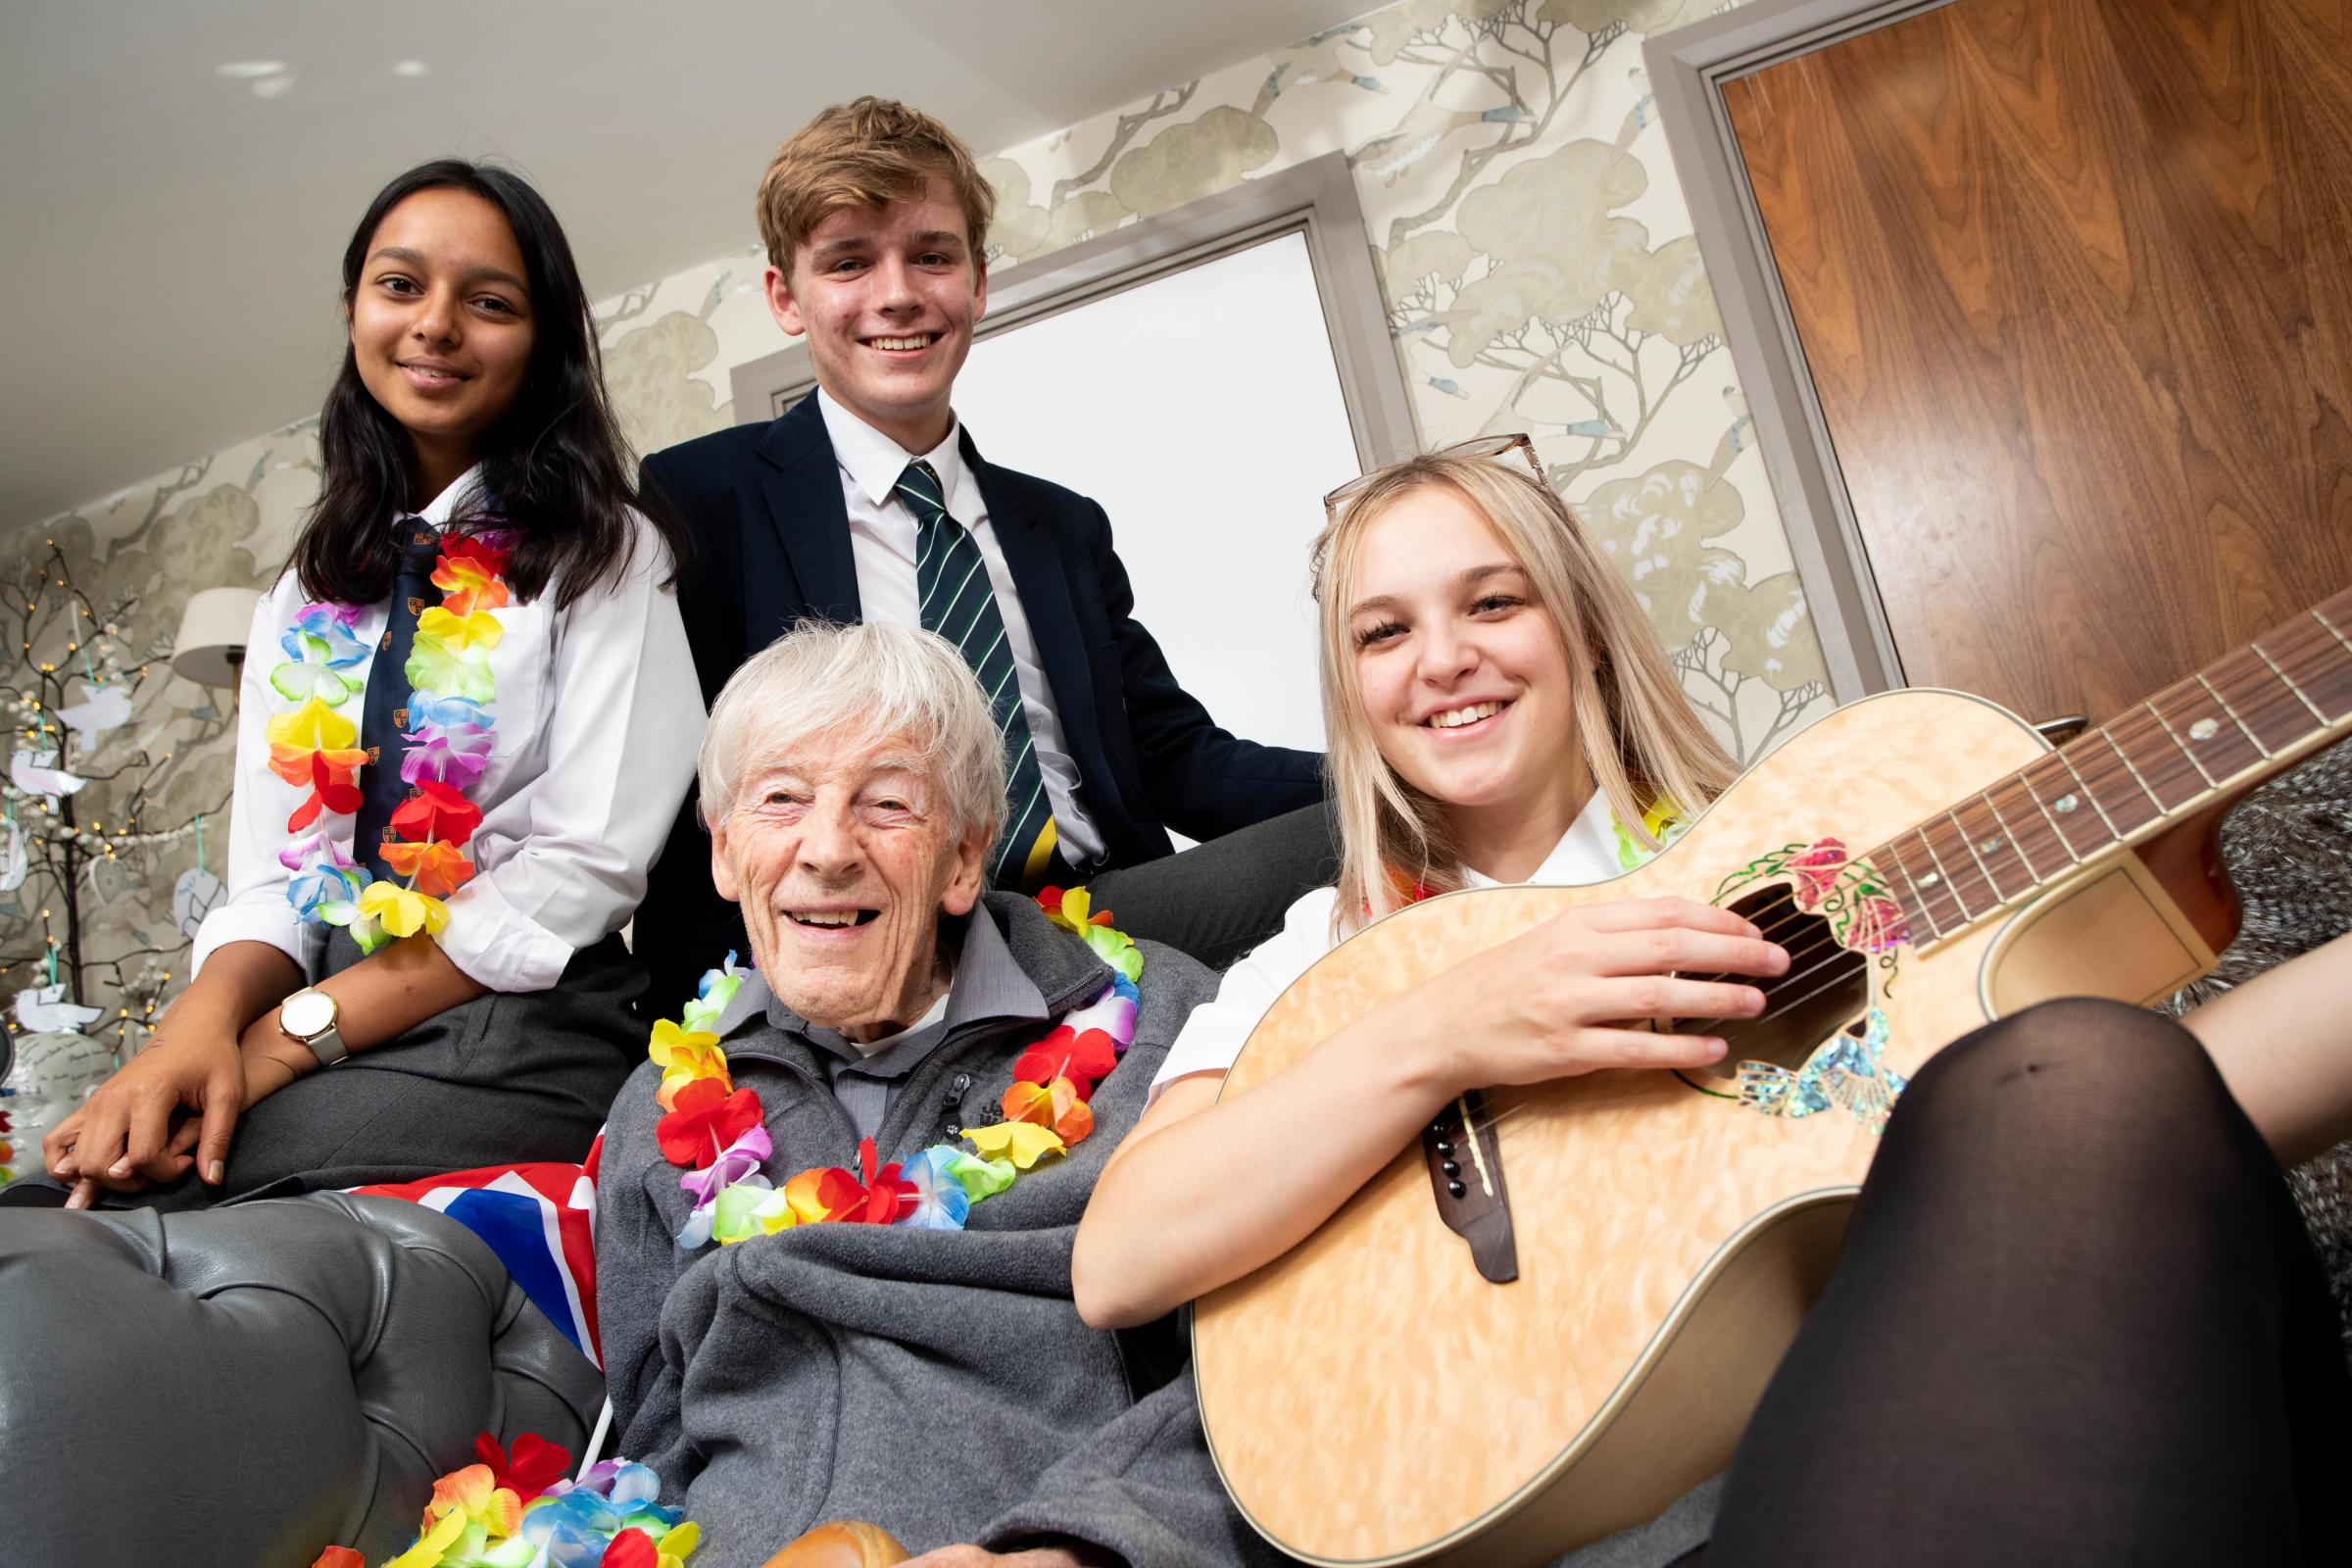 Magical moment as 94-year-old songwriter with dementia sings one of his hits with King's School Chester pupils